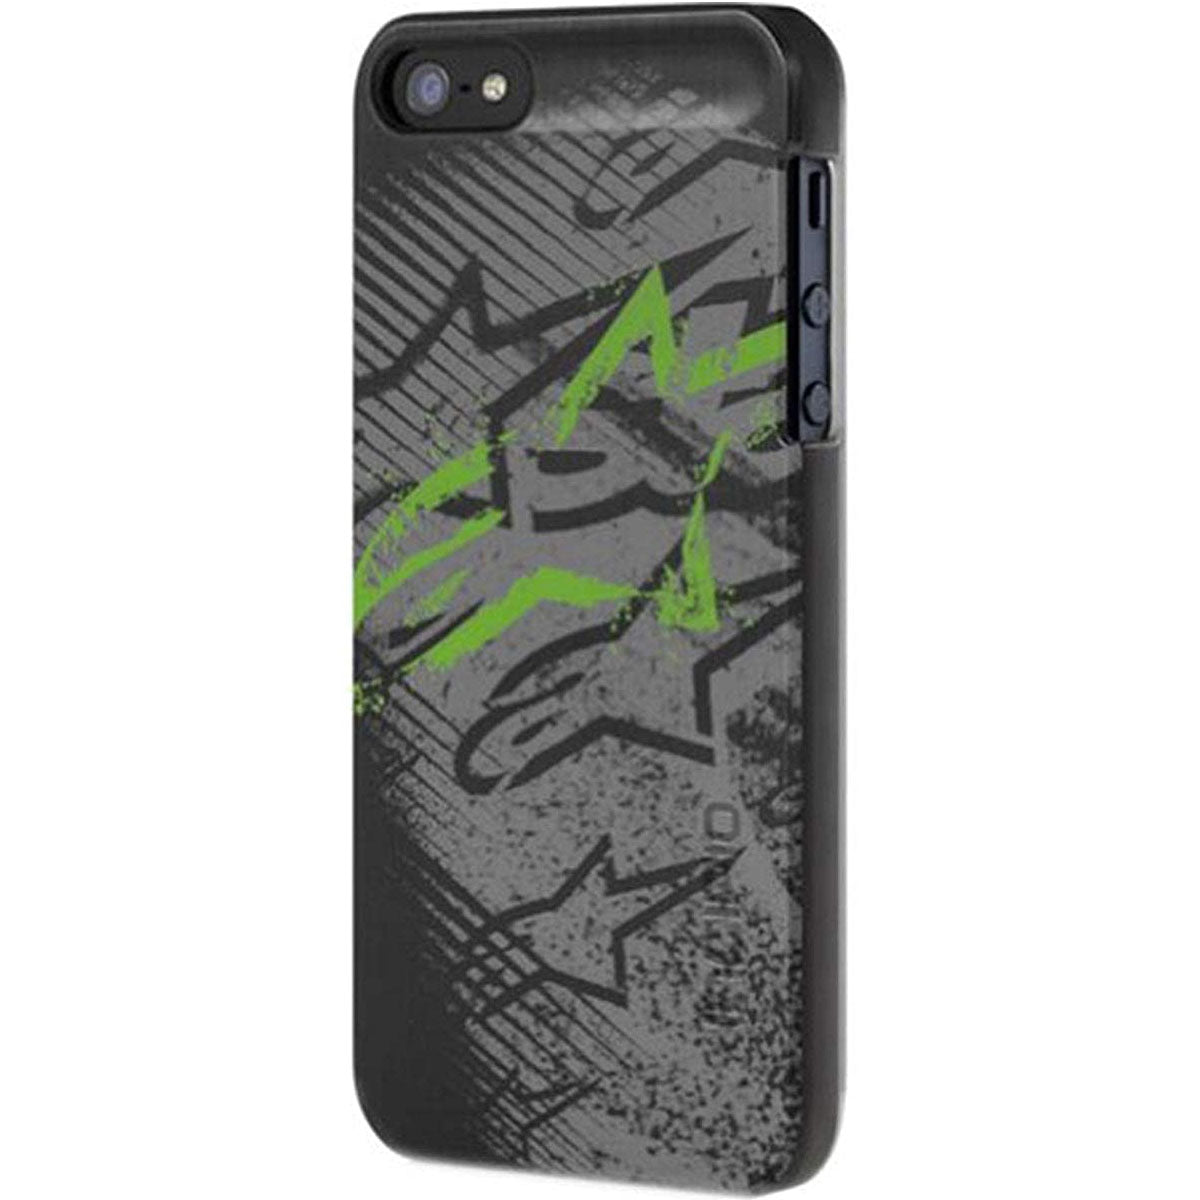 Alpinestars Drift Picks iPhone 5 Case Phone Accessories-1043